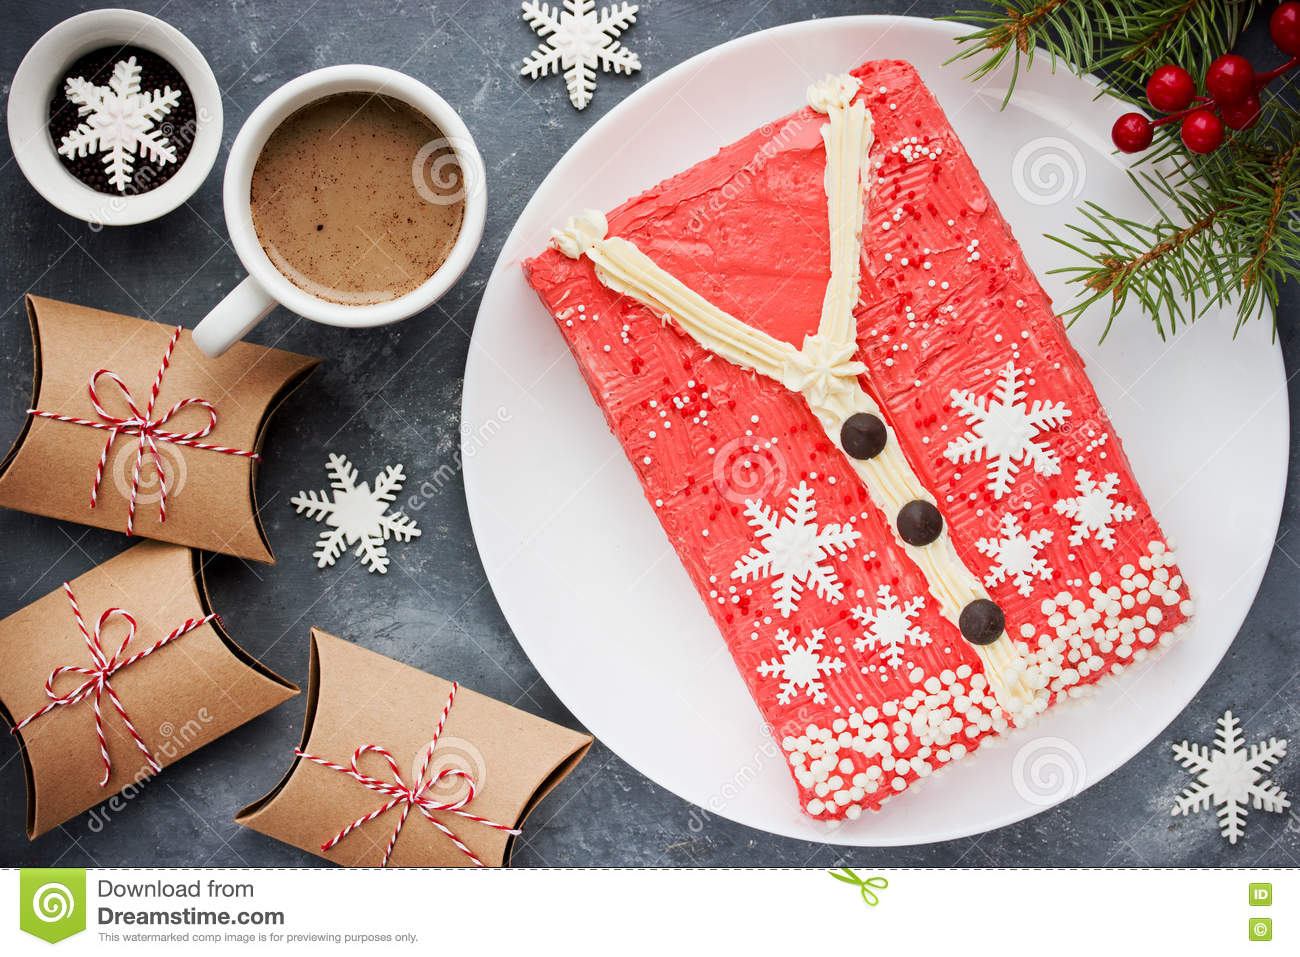 ugly christmas sweater cake recipe for winter holiday party creative idea for christmas new year xmas dessert food